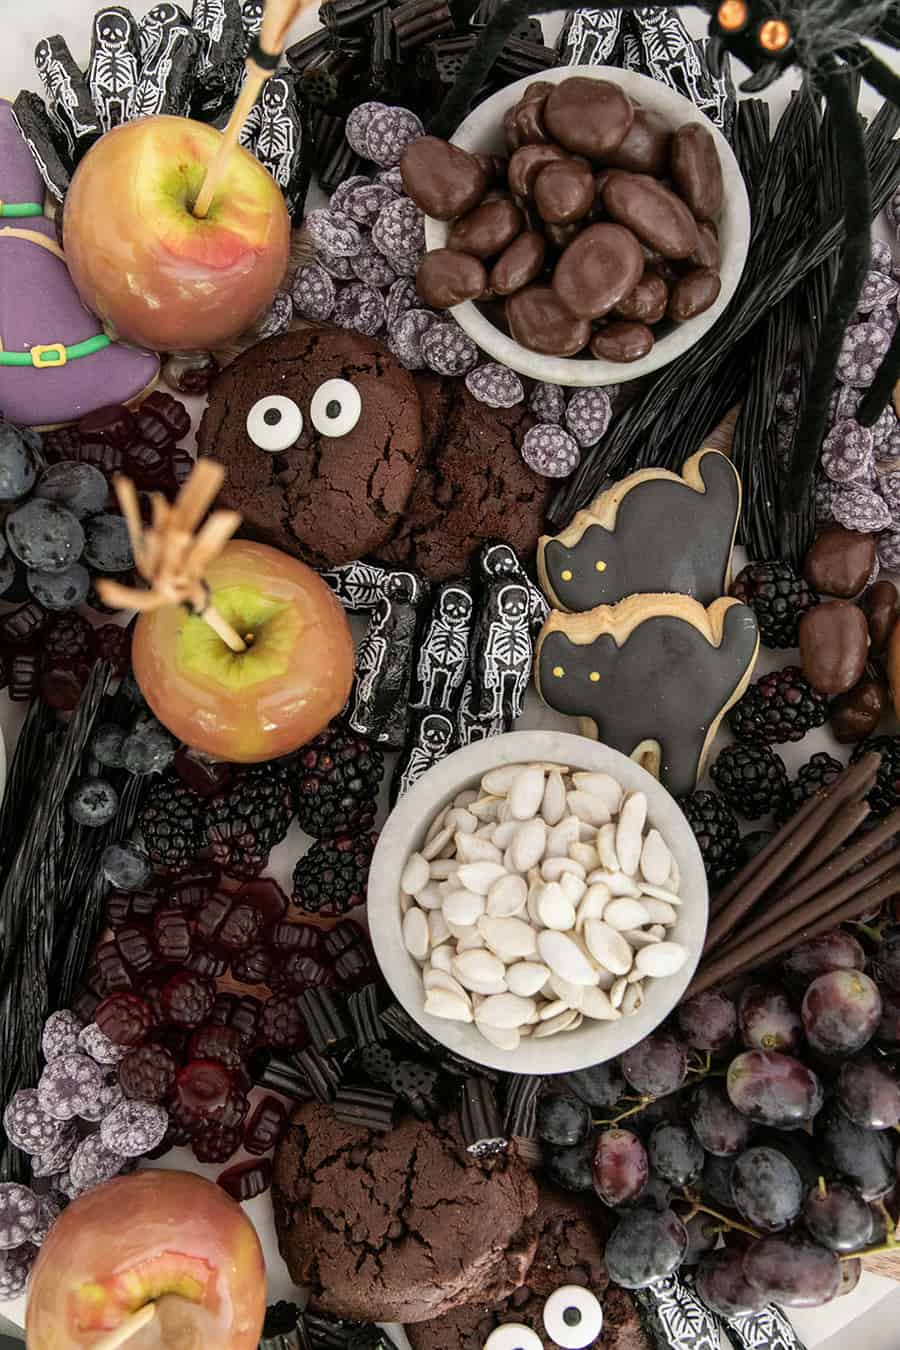 A Halloween dessert platter filled with caramel apples, fruit, chocolates and cookies.